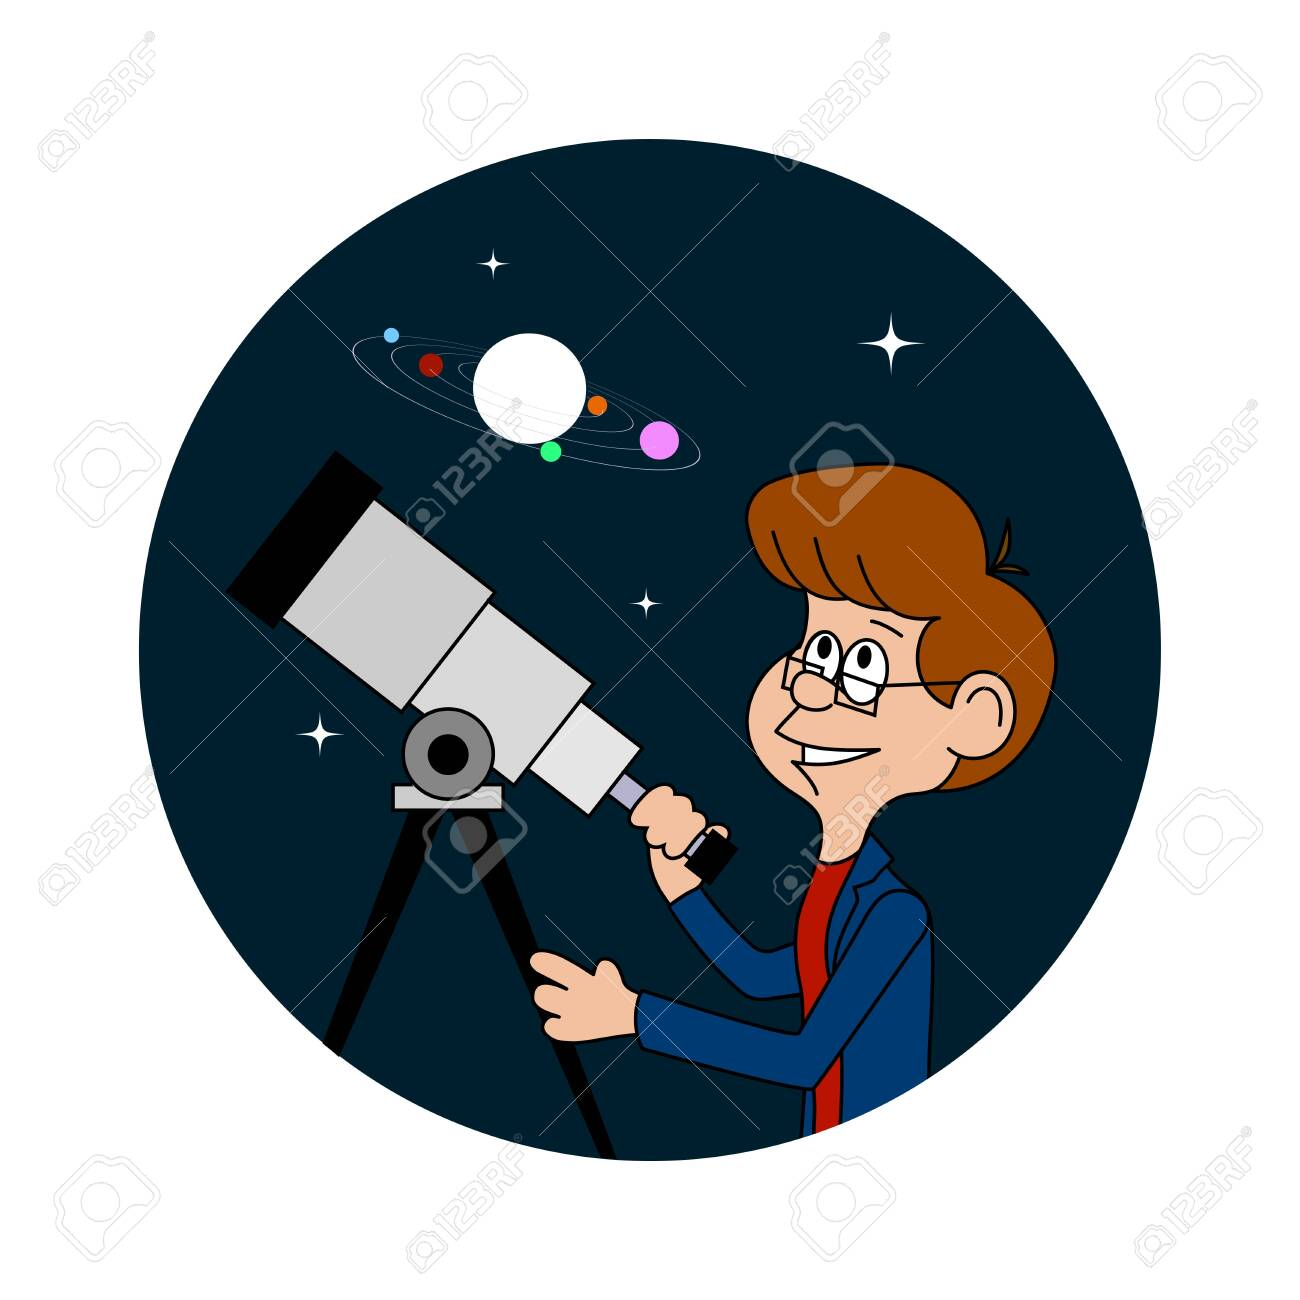 funny astronomer looks at the stars vector illustration - 126728719